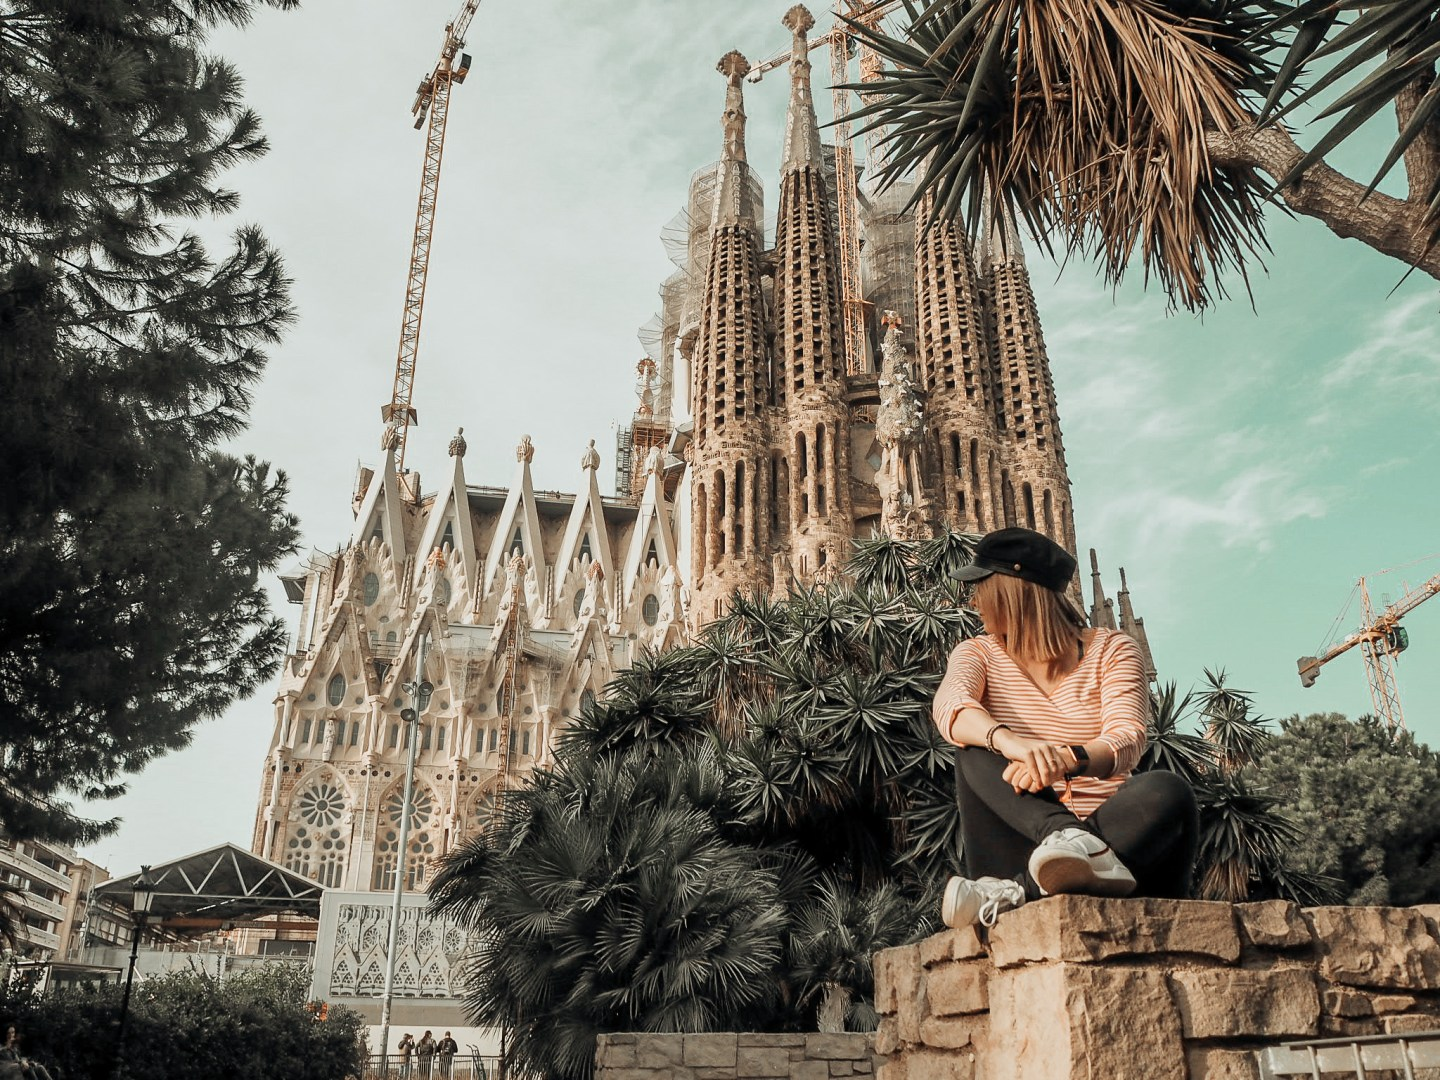 Barcelona Photo Diary - Day 3 Sagrada Familia